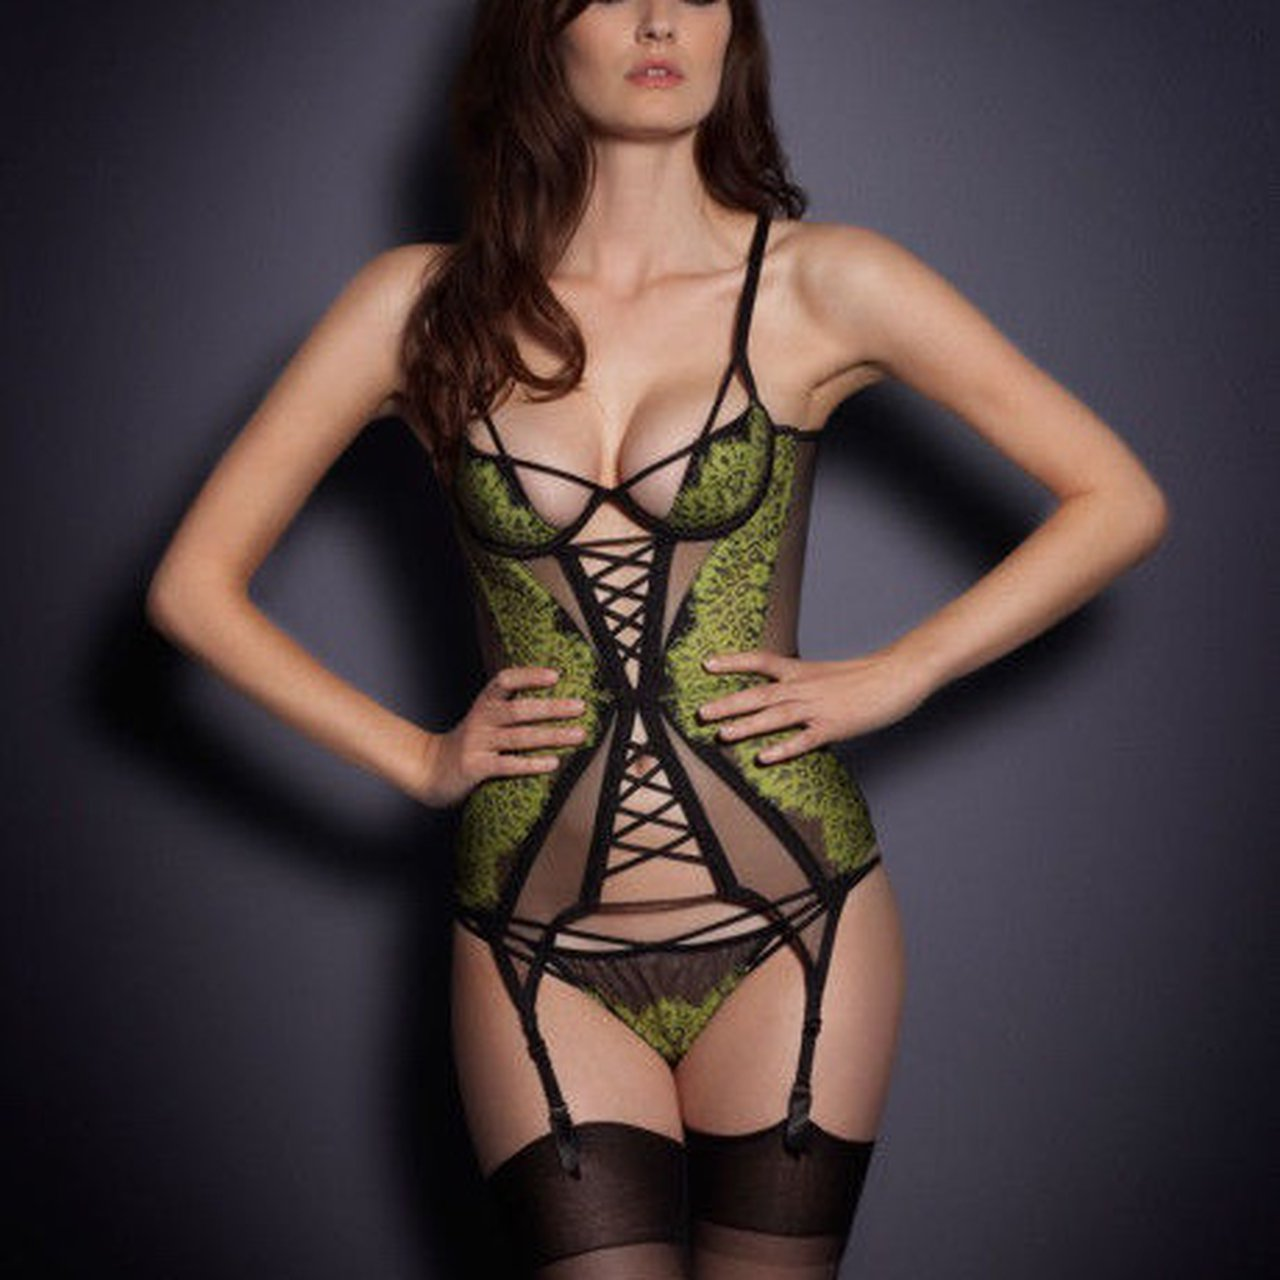 2627cba4b4 Agent provocateur electra basque new with tags i would depop jpg 1280x1280 Agent  provocateur basque